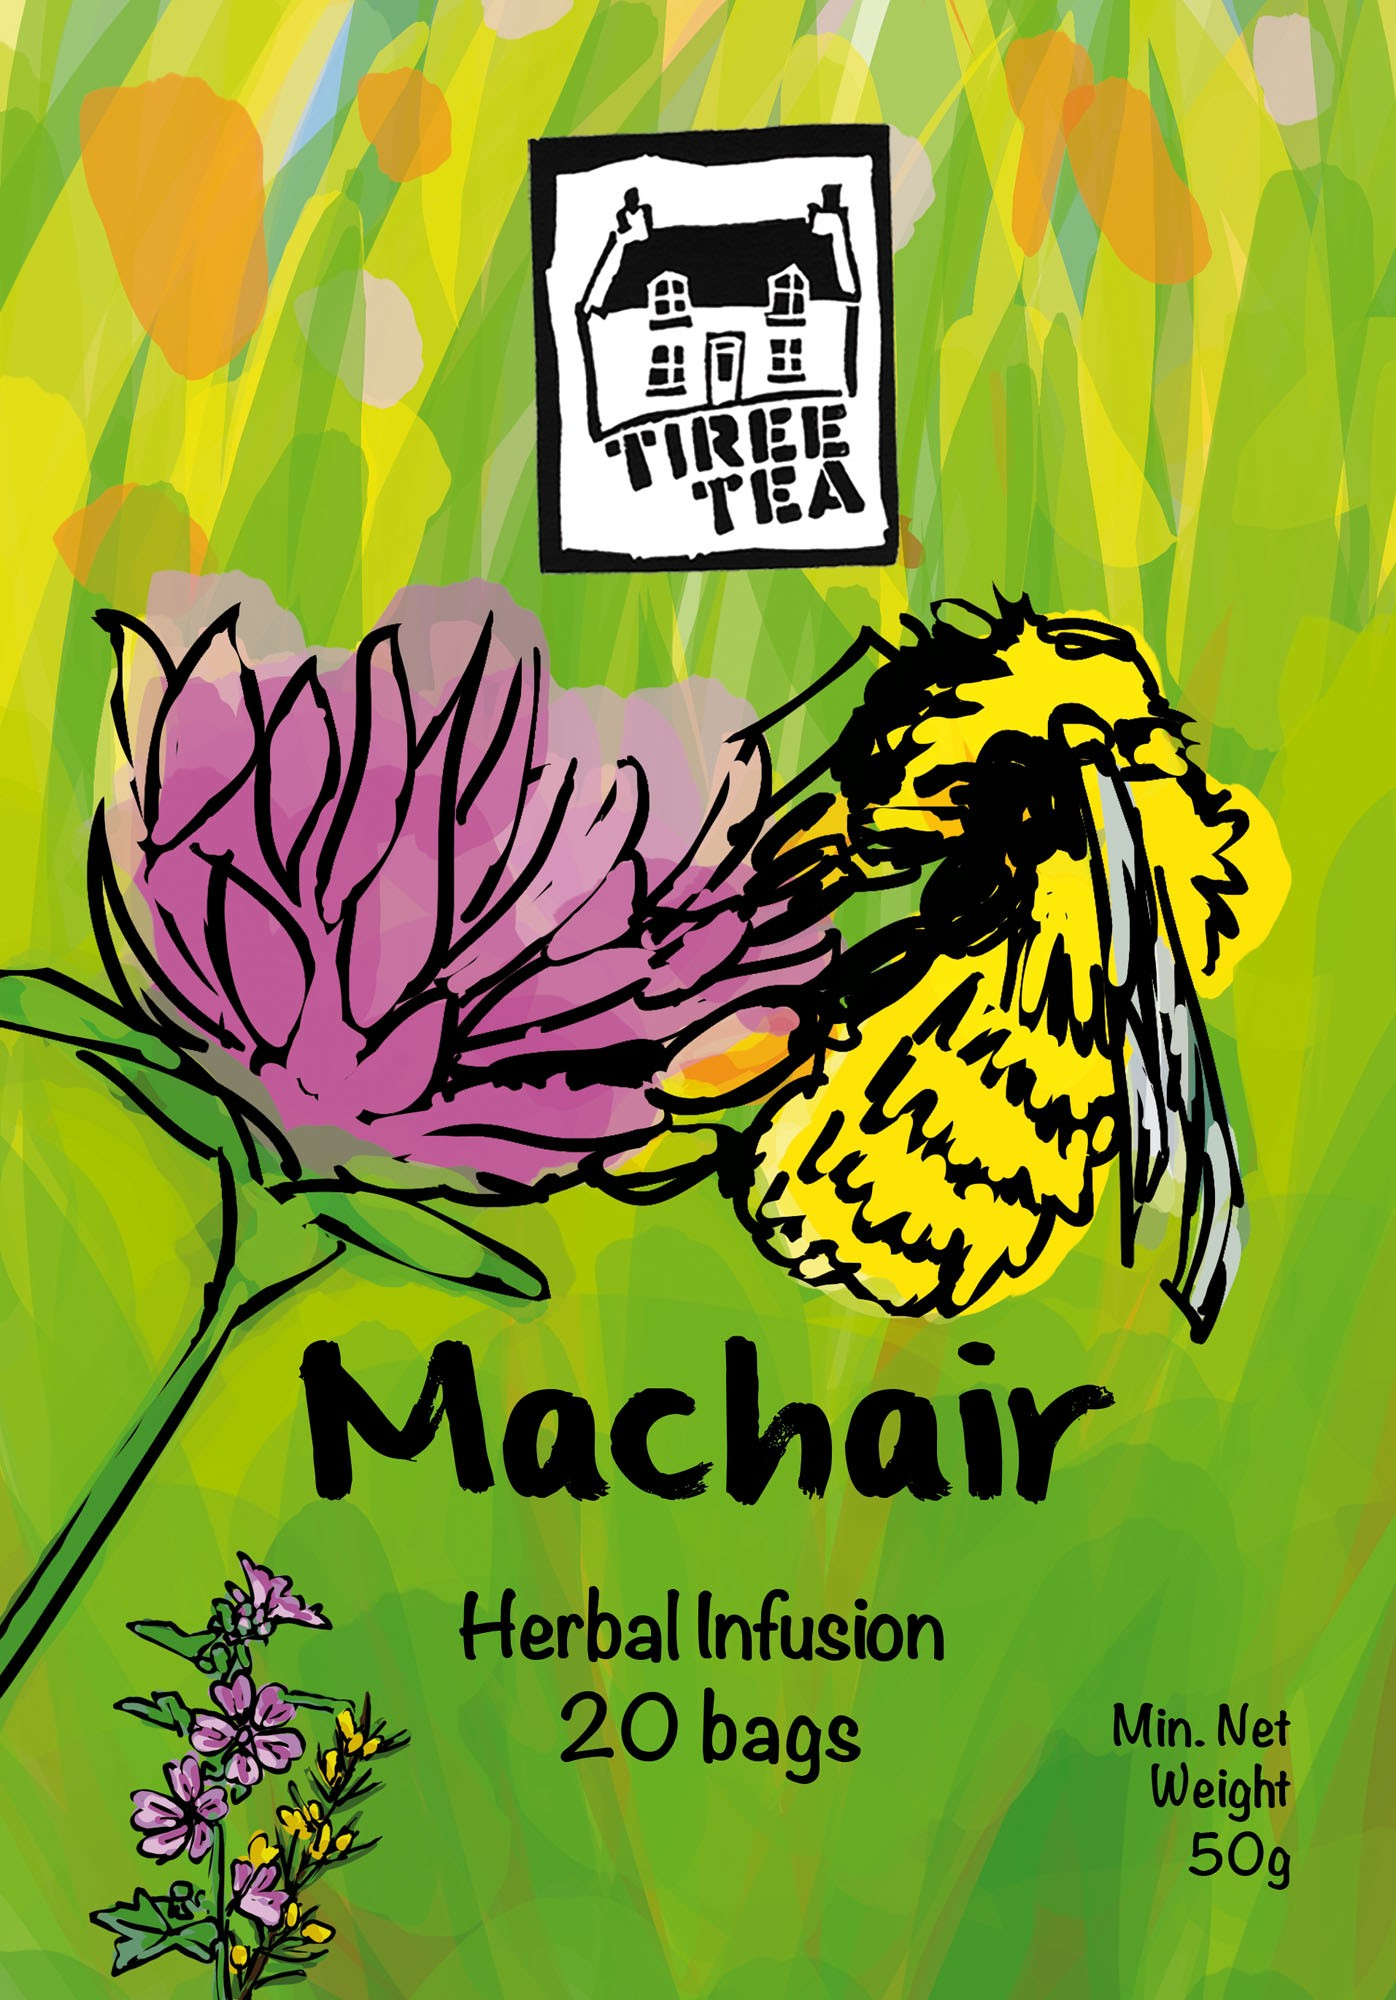 Machair Herbal Infusion